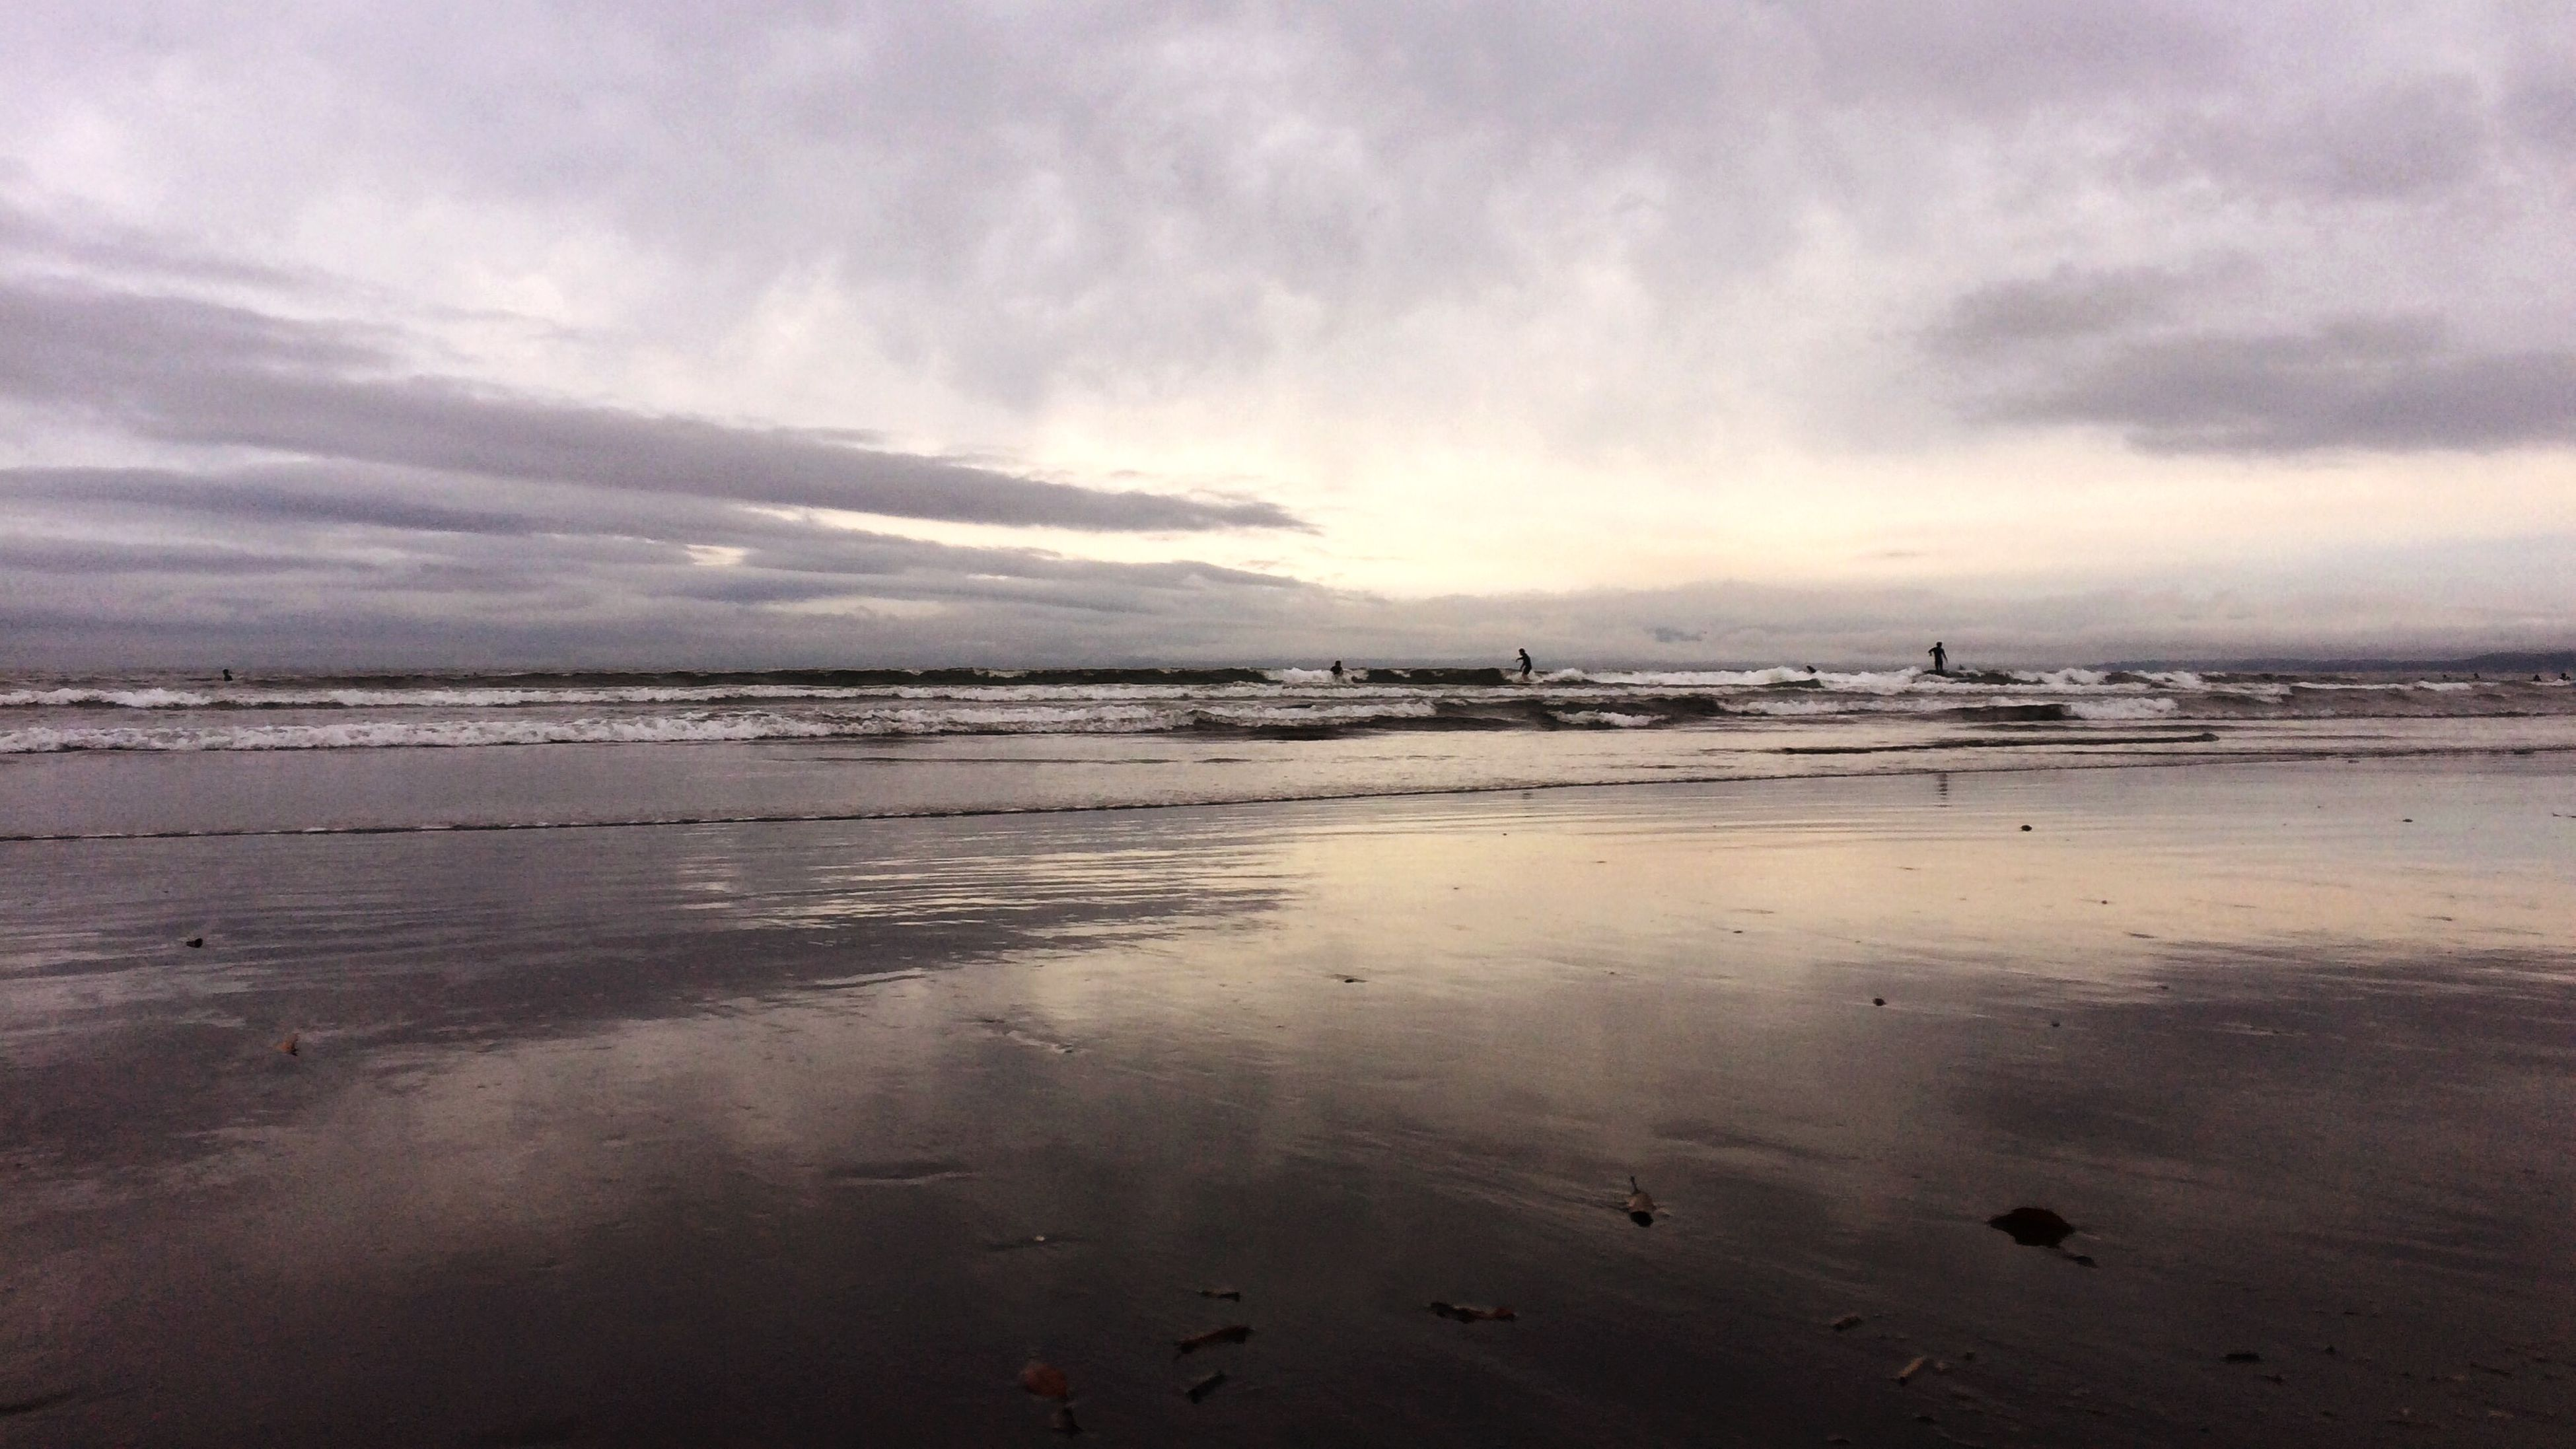 water, sky, sea, beach, cloud - sky, shore, tranquil scene, cloudy, sand, tranquility, scenics, beauty in nature, horizon over water, weather, nature, cloud, overcast, idyllic, dusk, coastline